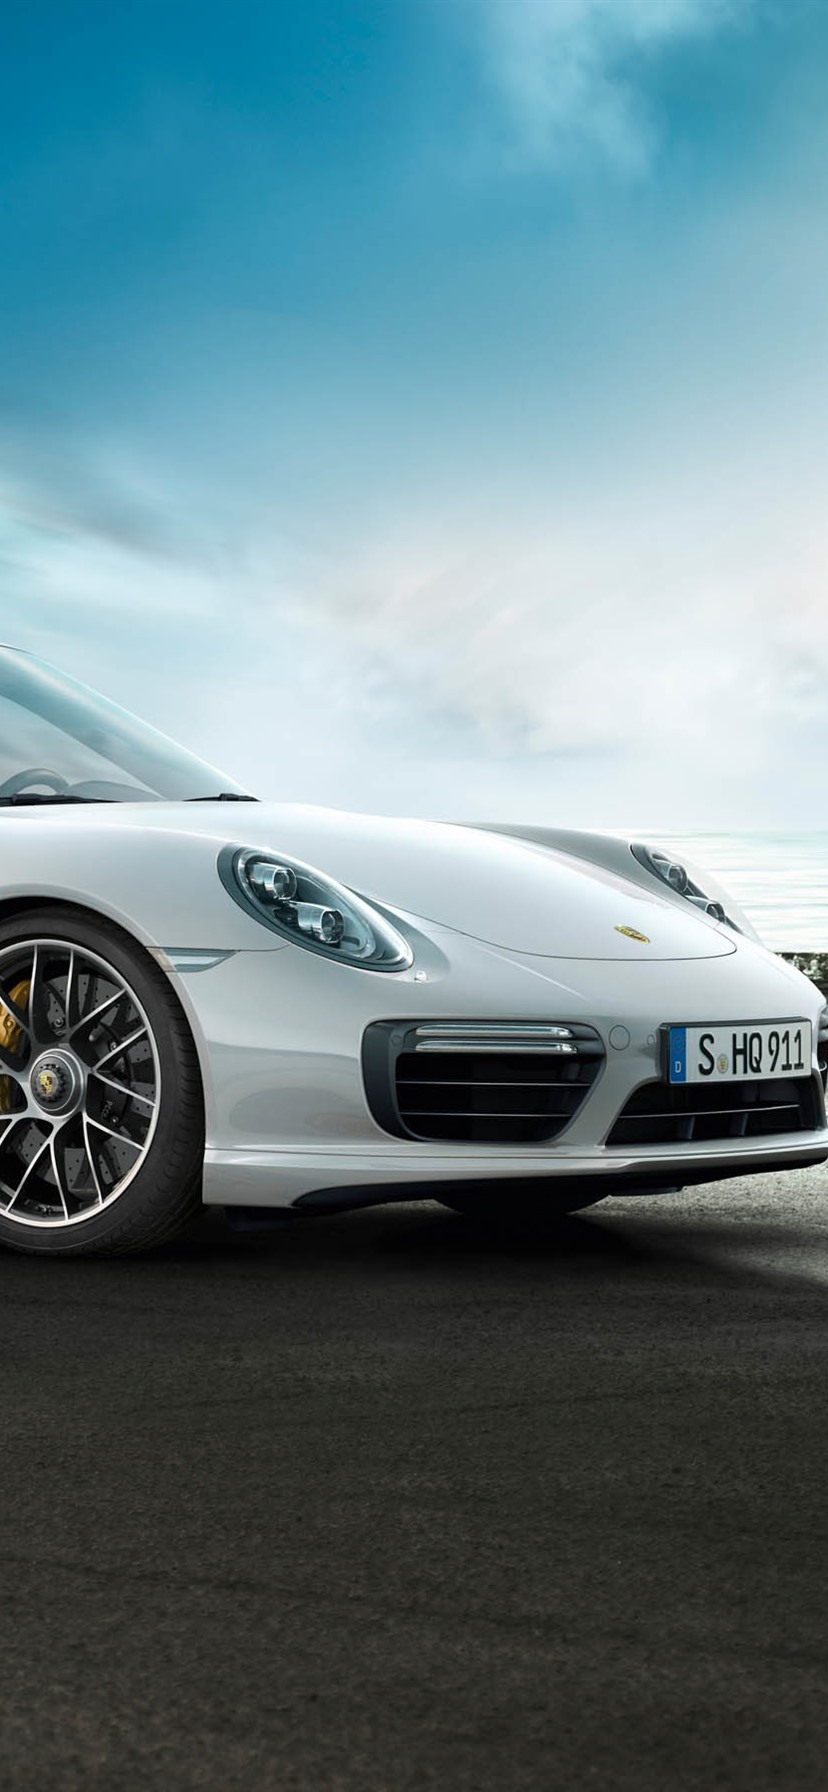 Porsche 911 Turbo White Supercar Side View 828x1792 Iphone 11 Xr Wallpaper Background Picture Image